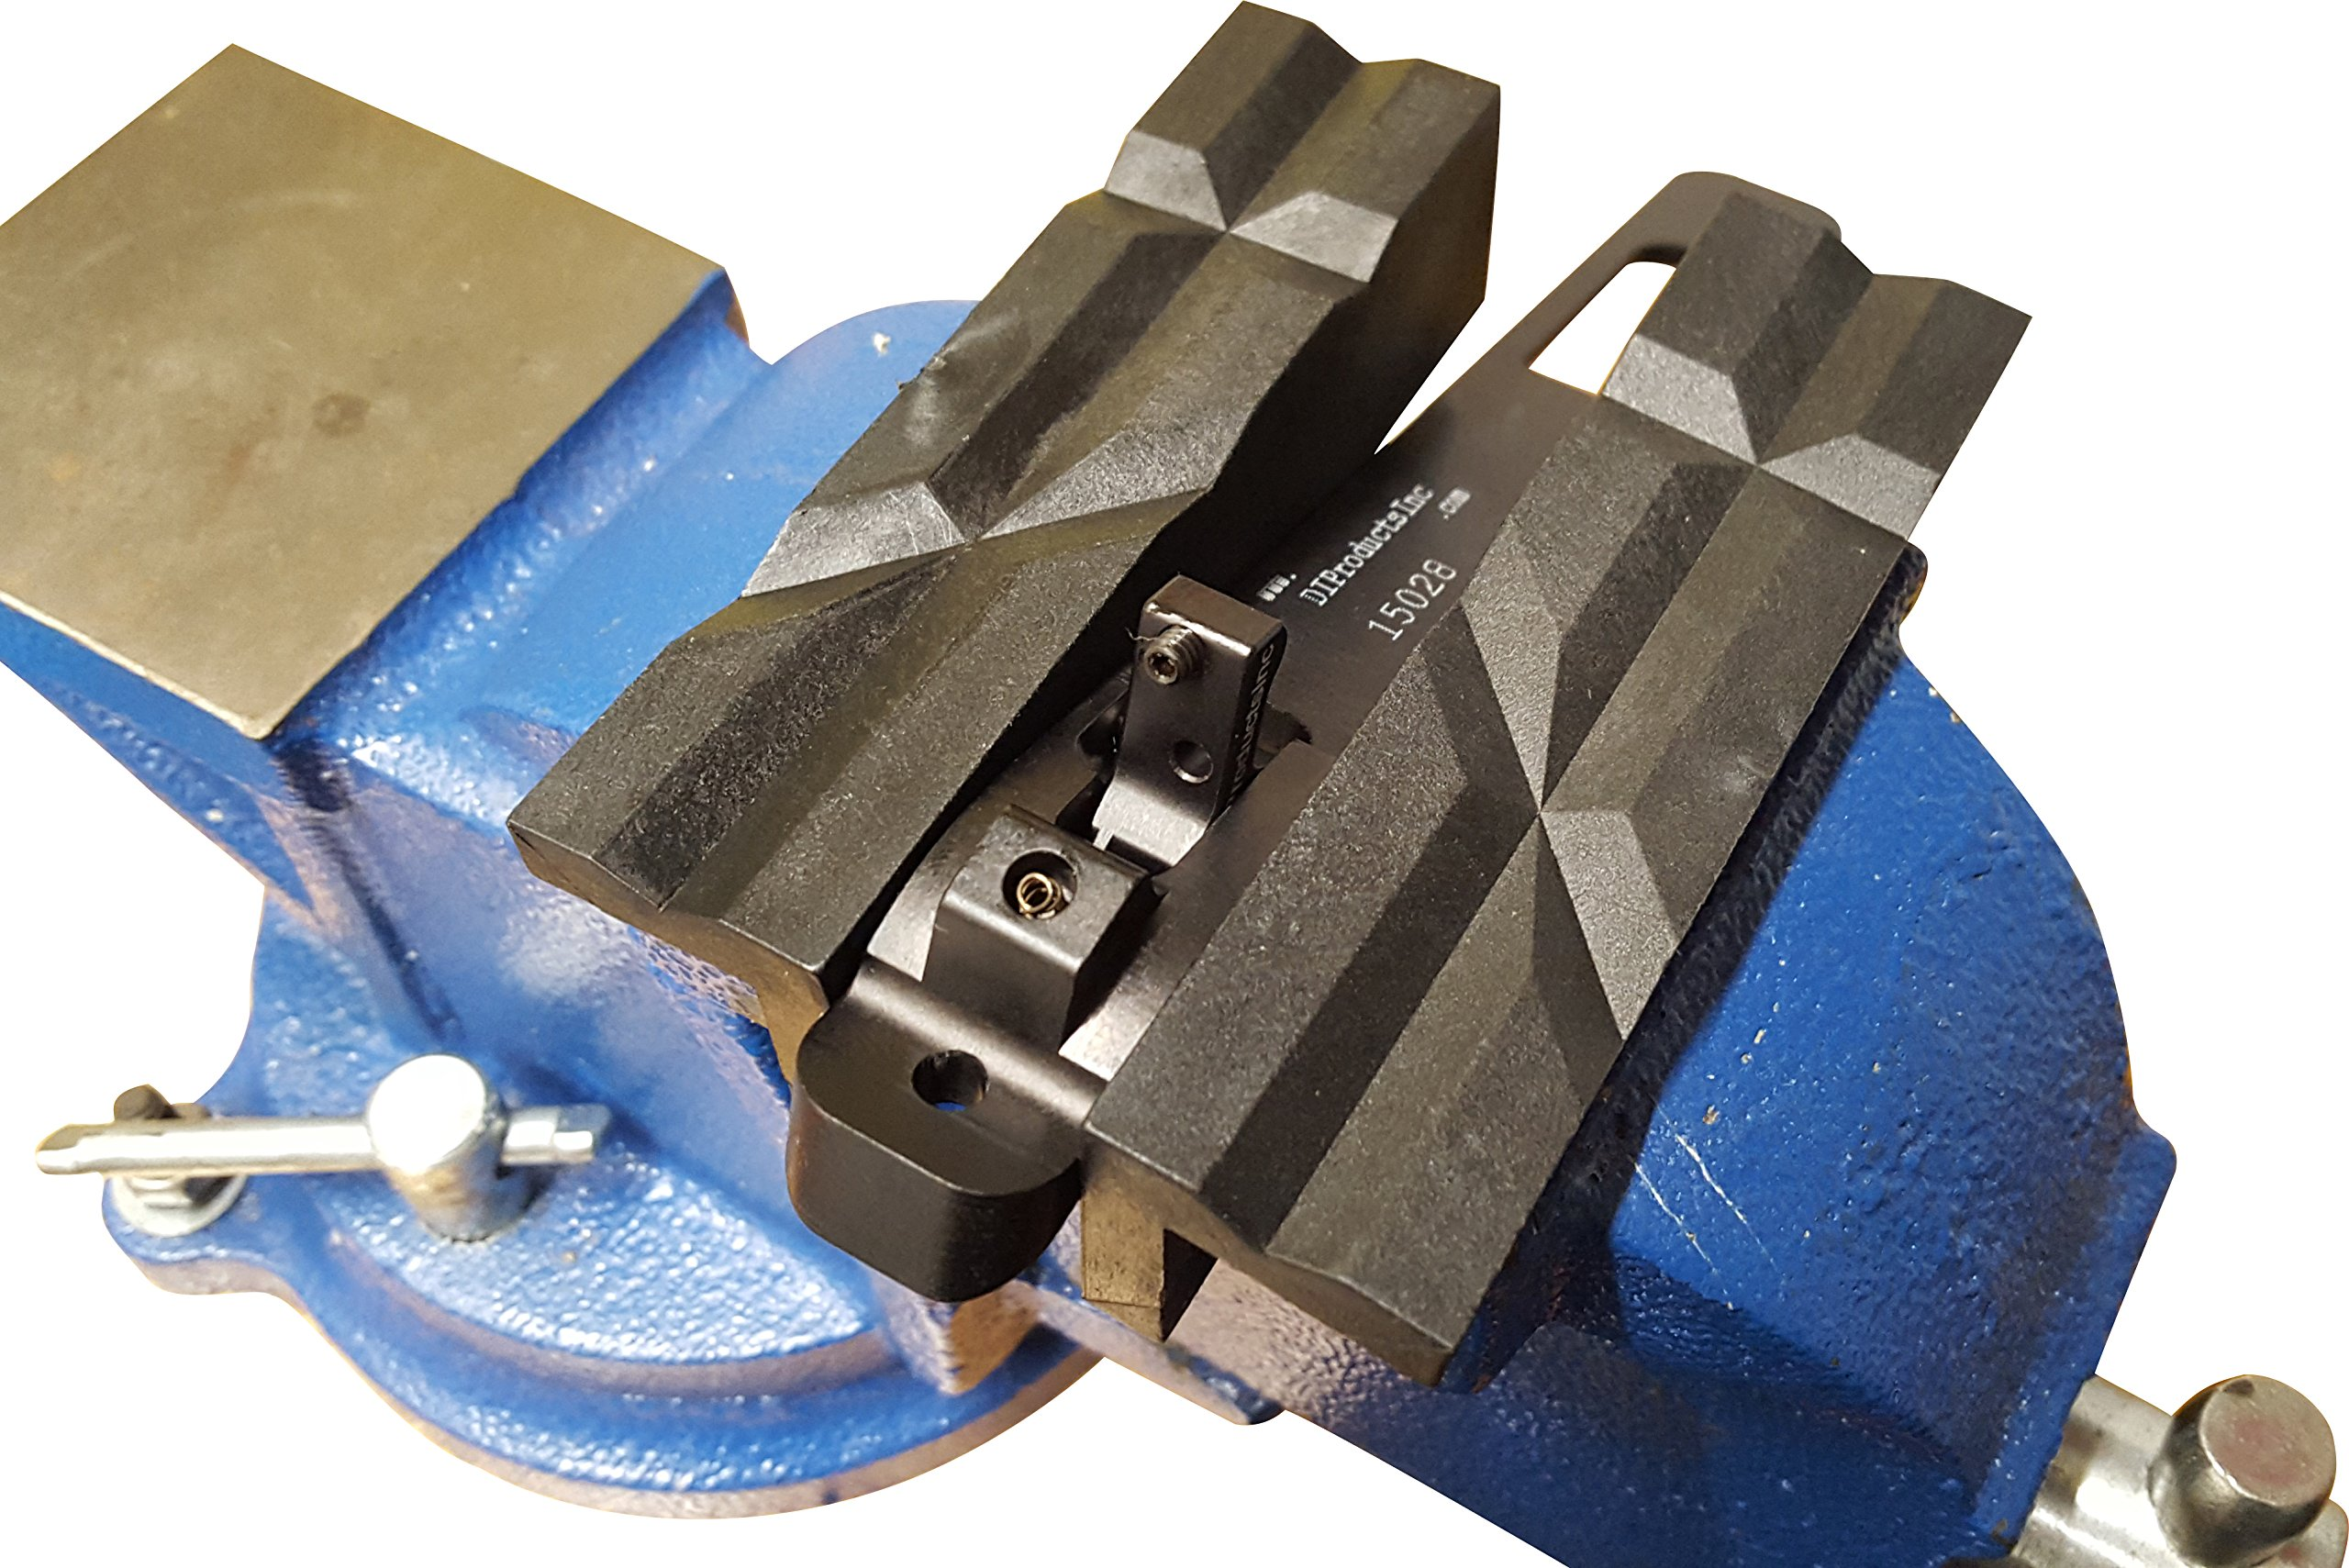 Vise Jaws - Nylon, Multipurpose 6'' - Use on any Metal Vise, Magnetic Reversible Pads (2 Sets in 1), Clamp Flat or Round Products - Available in 4'' or 6'' by JCL PRODUCTS (Image #7)